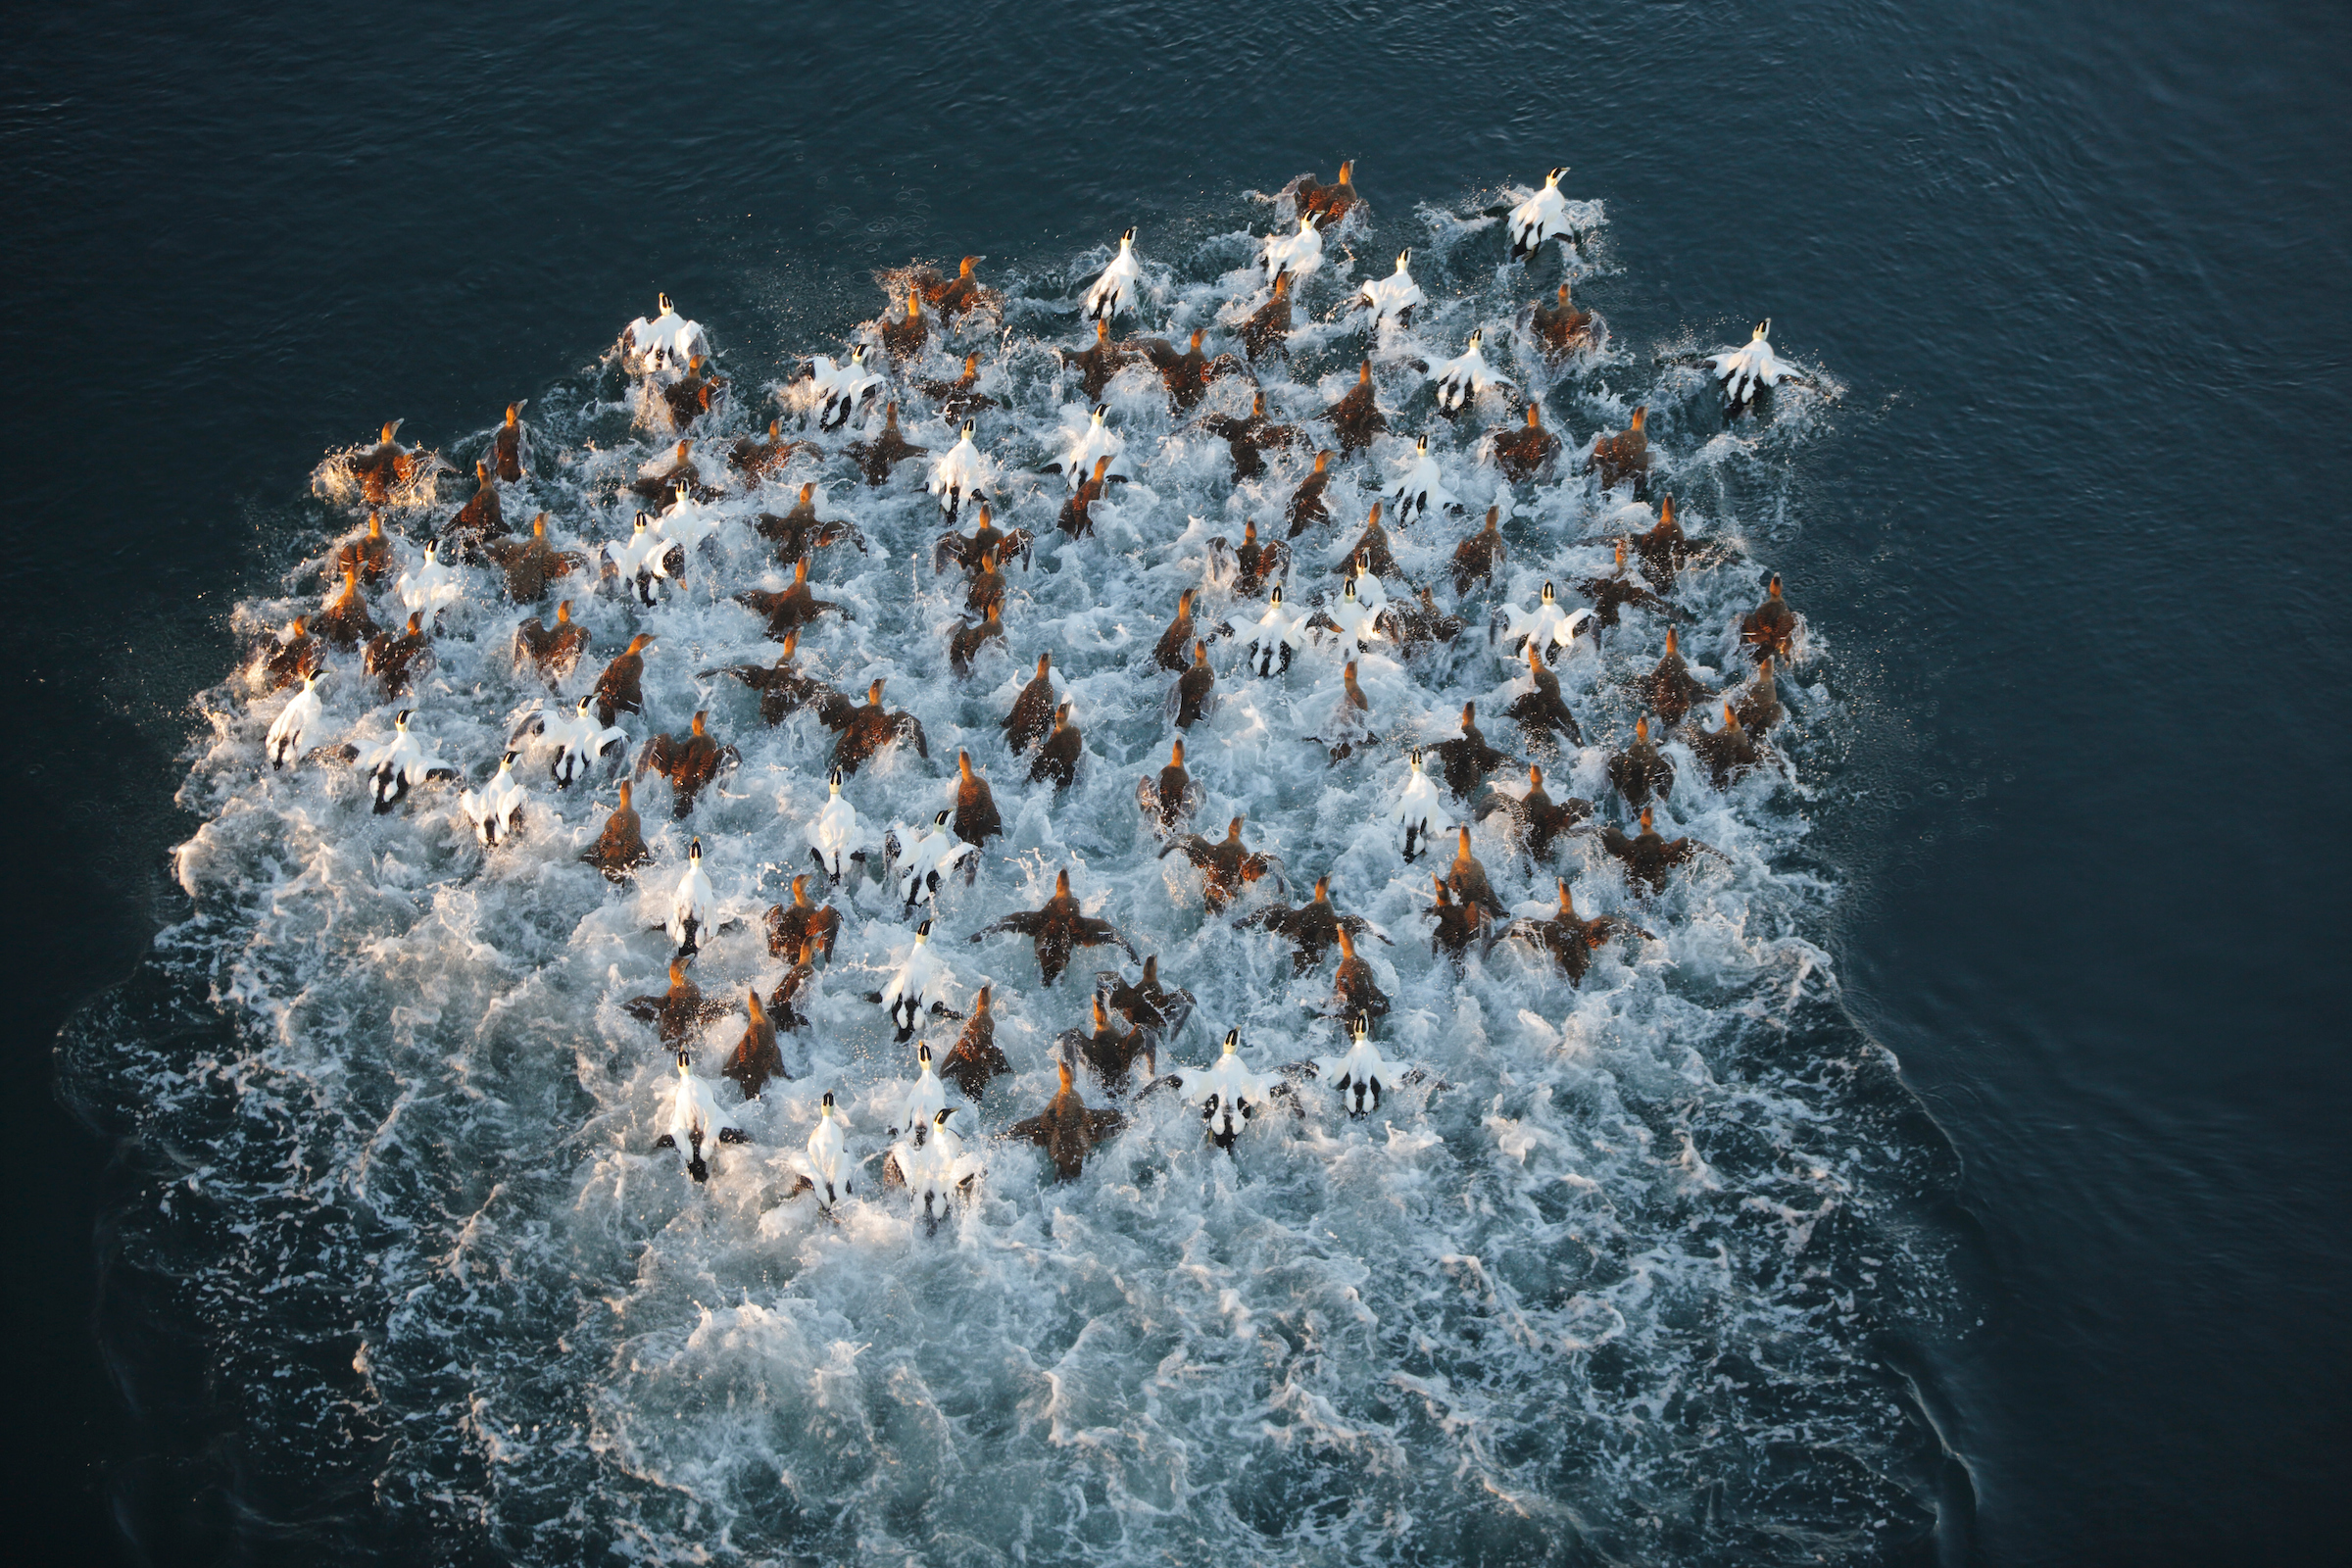 eider ducks in anti- predator formation. a swimming otter came by